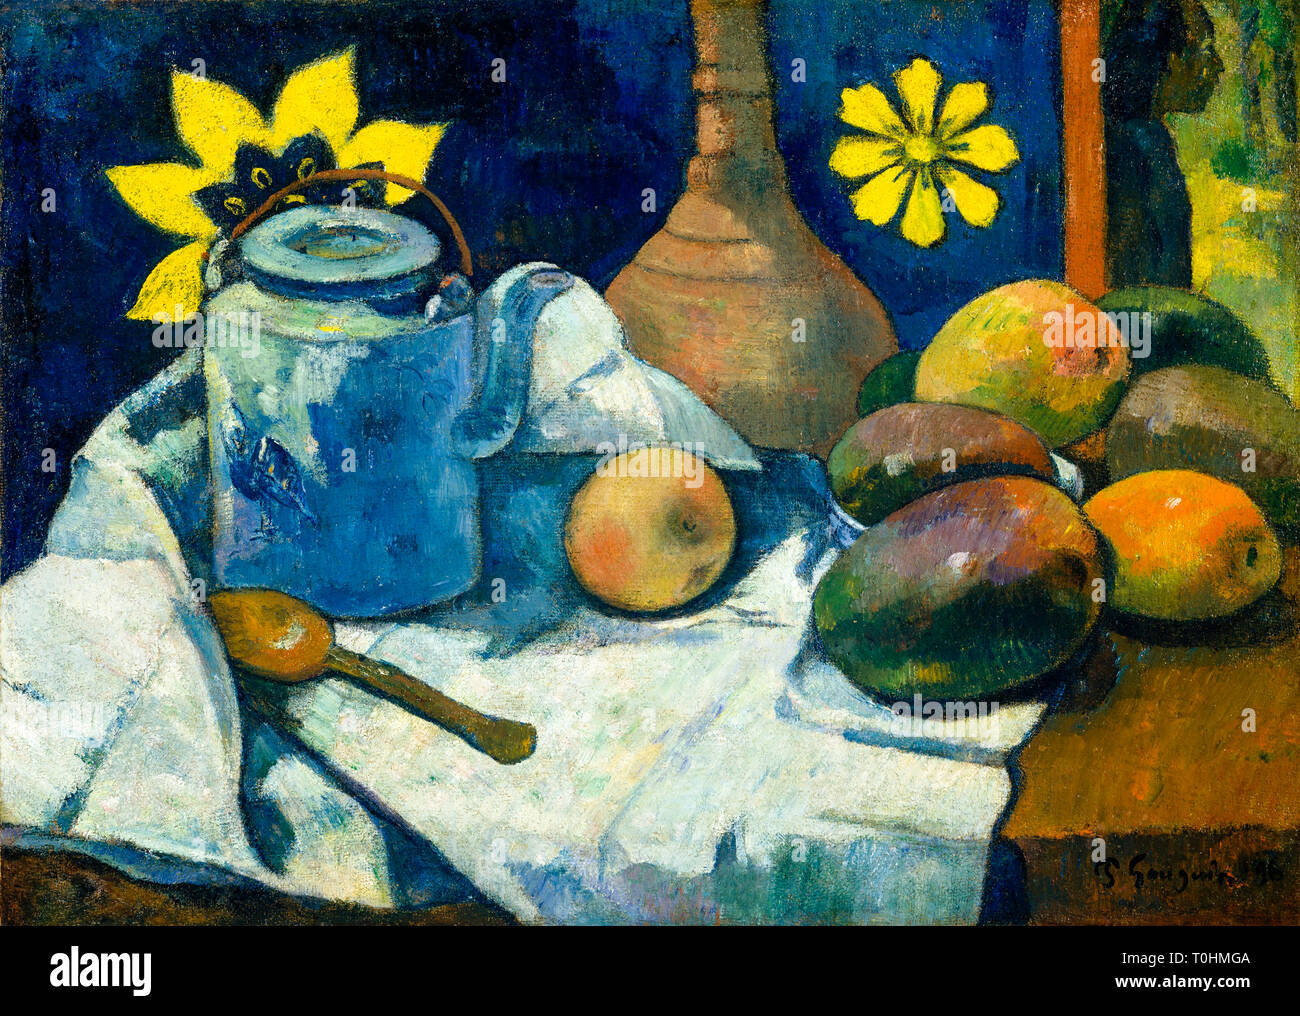 Paul Gauguin, Still Life with Teapot and Fruit, painting, 1896 - Stock Image